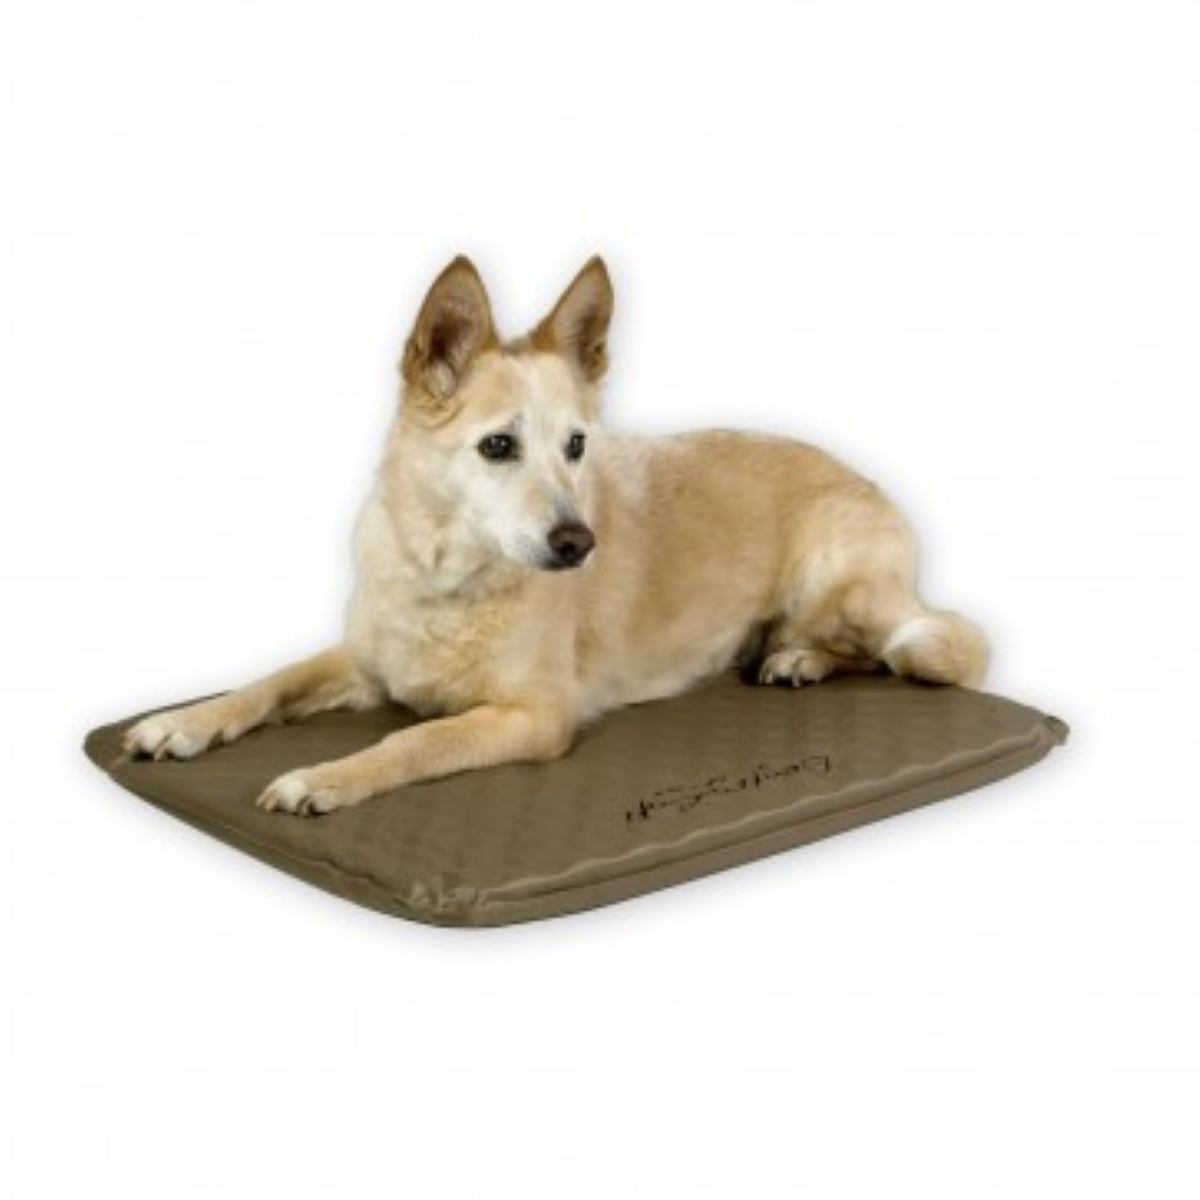 Lectro-Soft Heated Pet Bed - Medium Size for Smaller Dogs